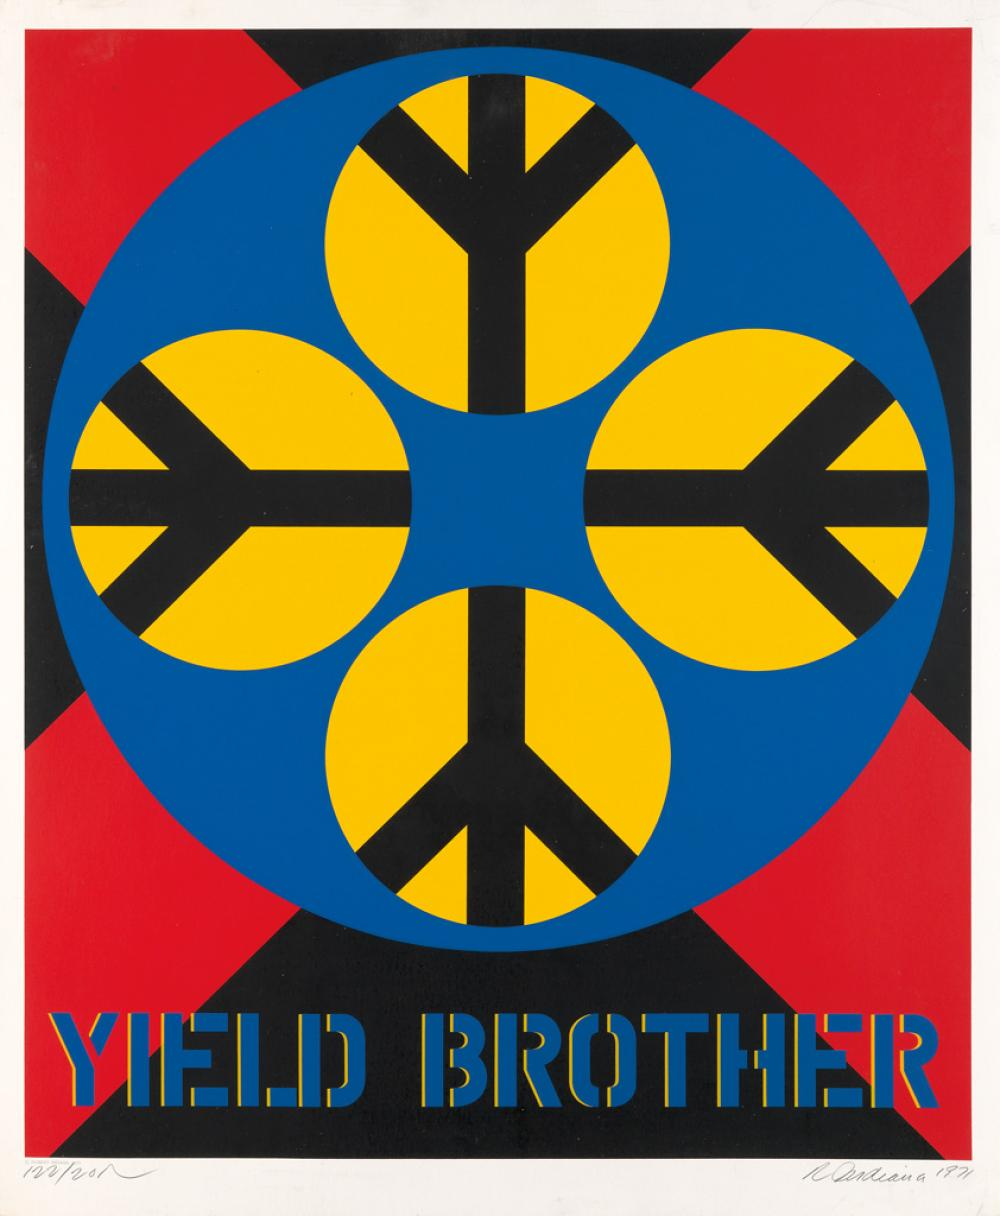 ROBERT INDIANA Yield Brother.